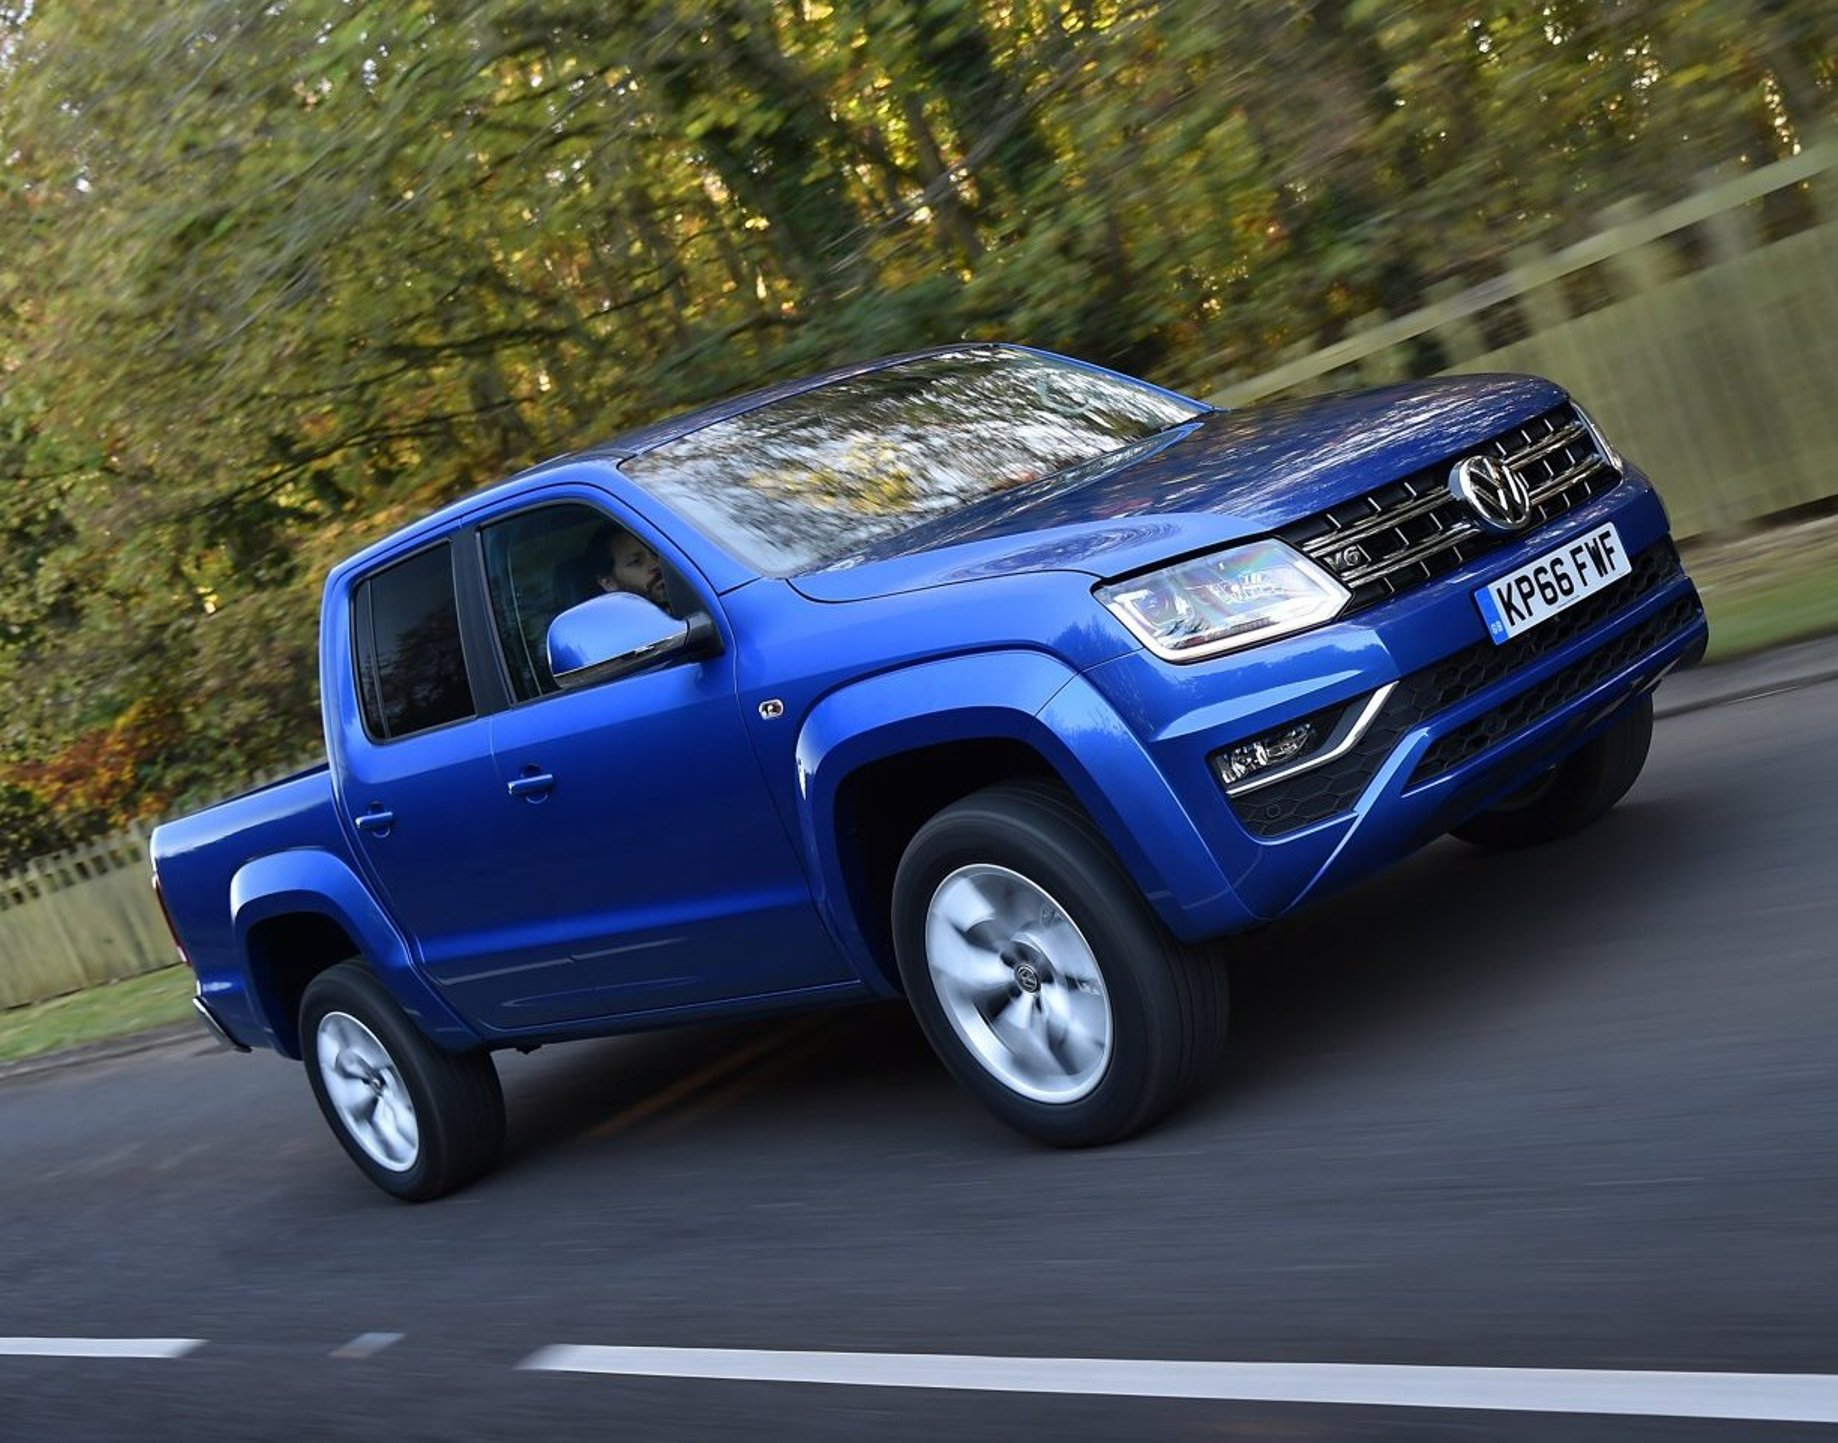 Volkswagen Amarok Aventura 30 V6 Double Cab Pick Up Road Test Description 3100 Enginejpg Vws